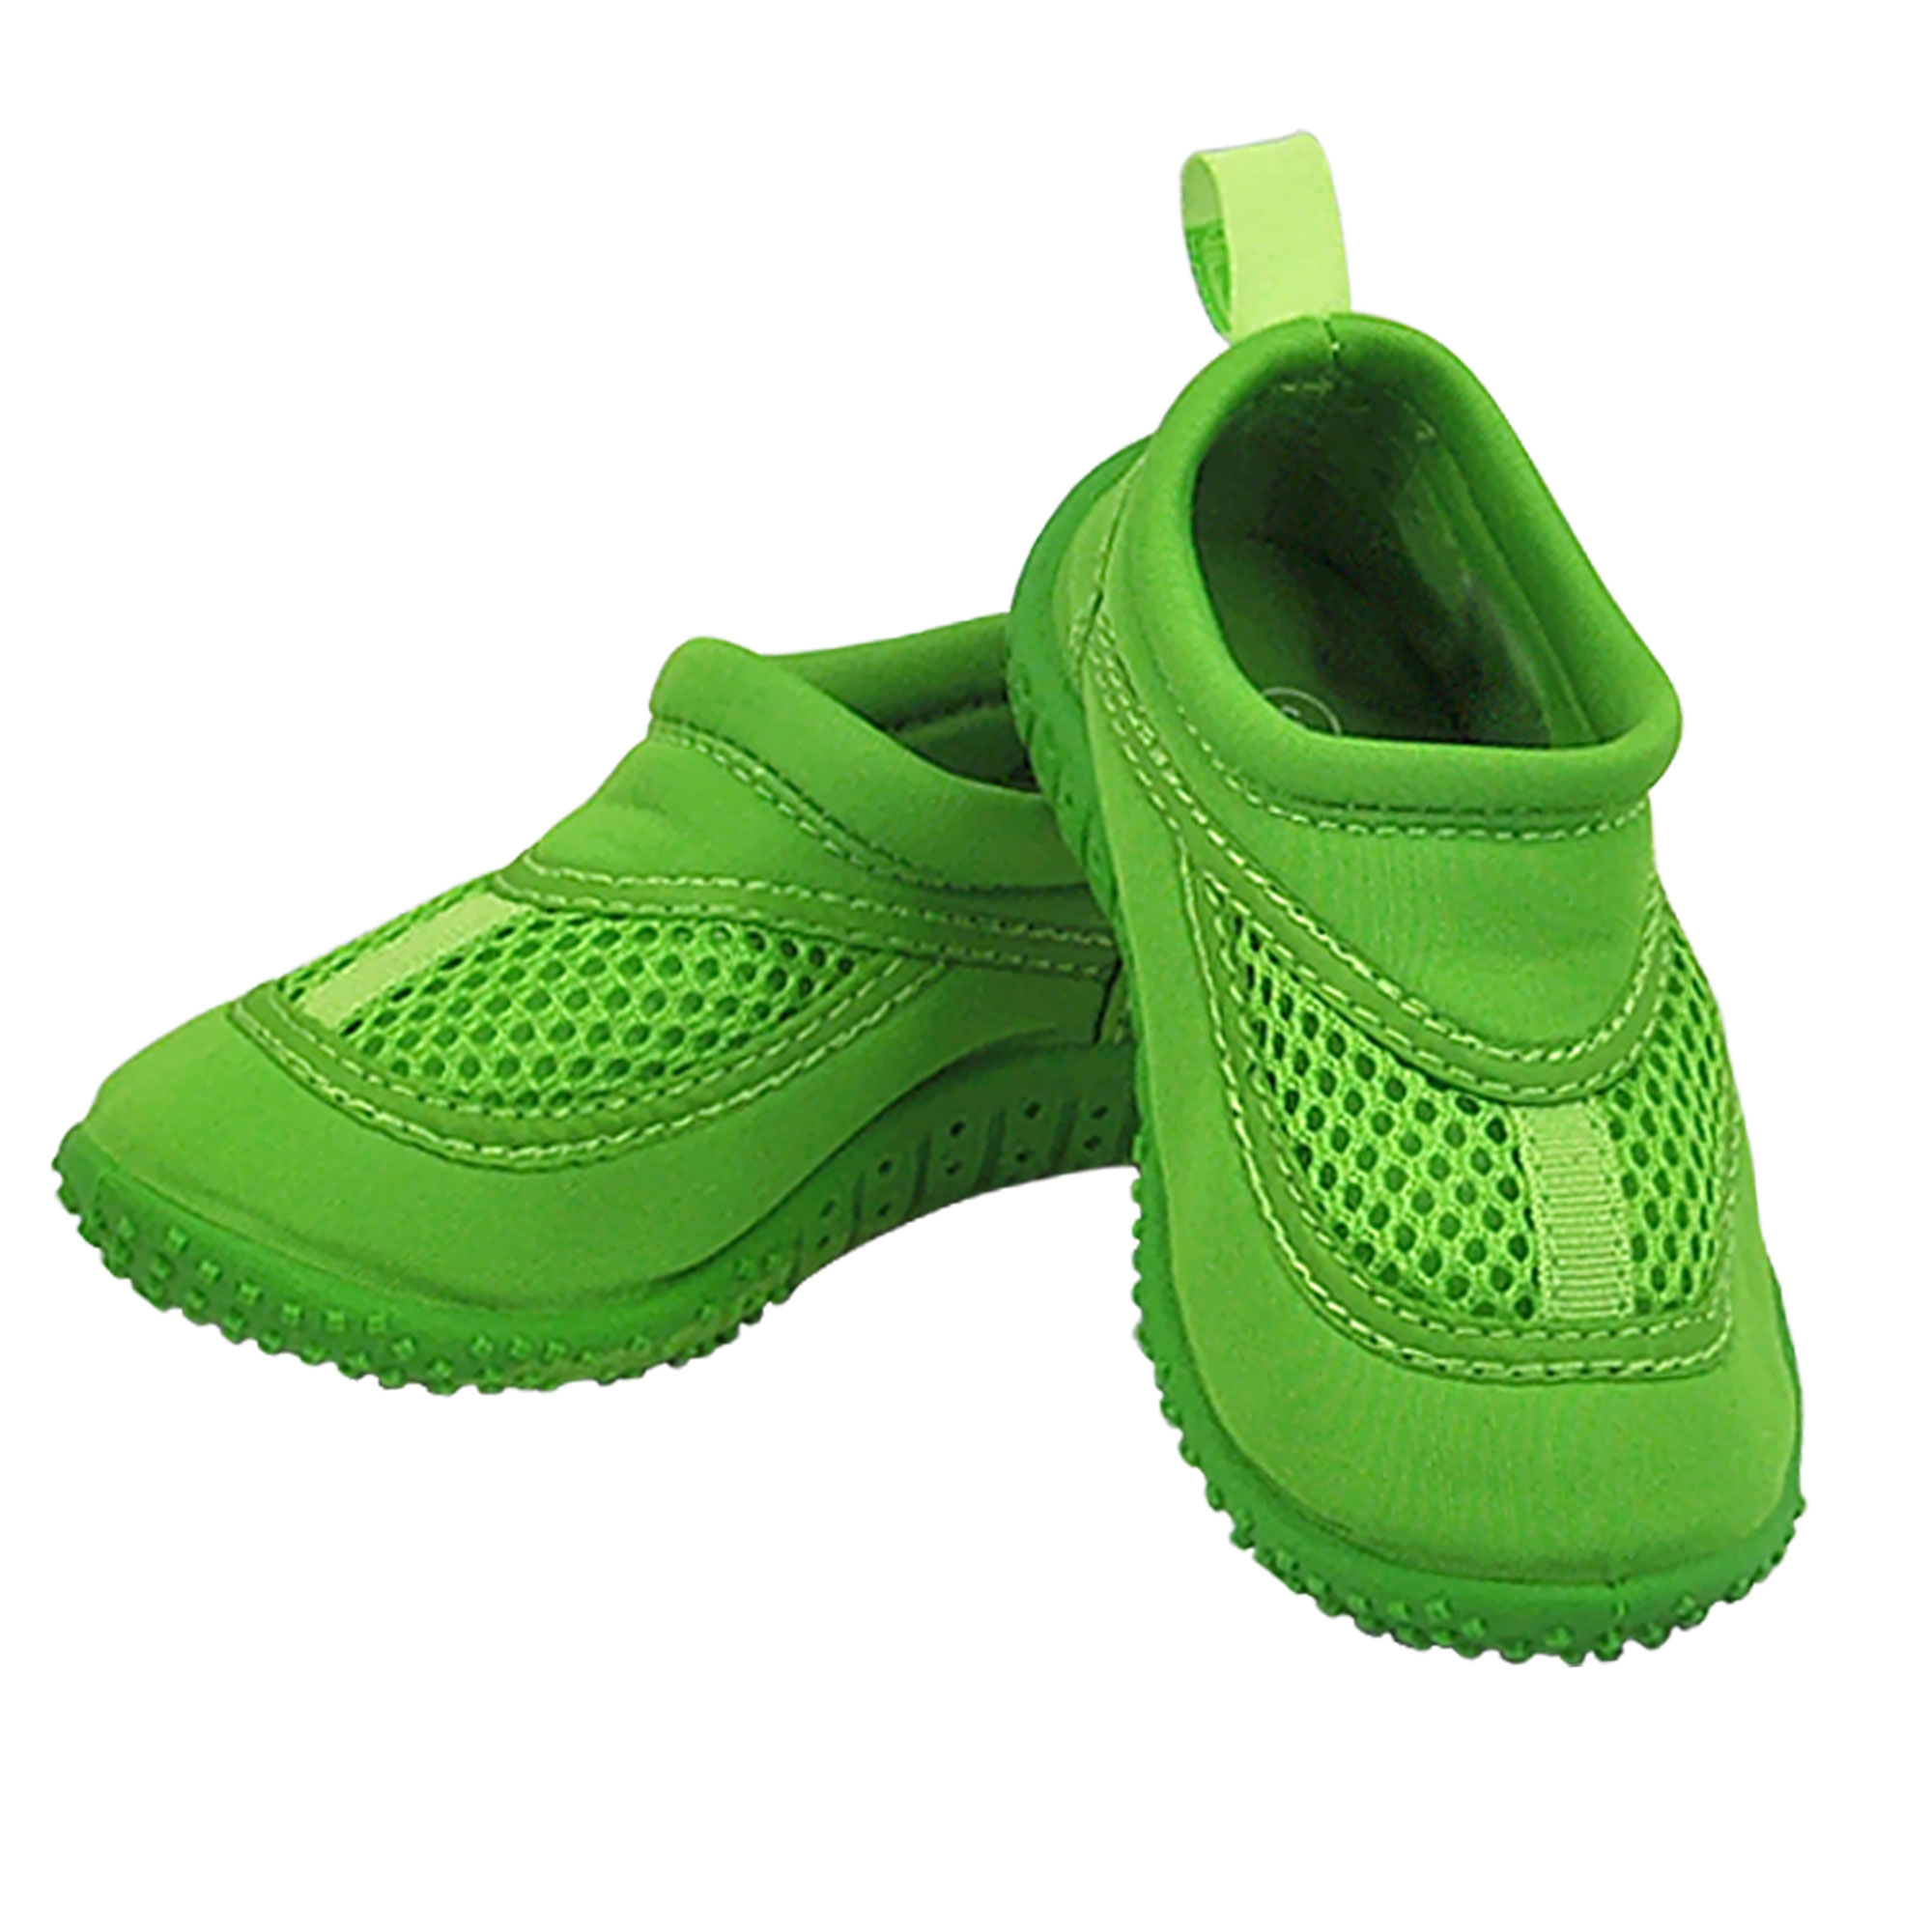 Find great deals on eBay for boys water shoes size 4. Shop with confidence. Skip to main content. eBay: Shop by category. Shop by category. Enter your search keyword Fresko Kids Size 4 Camo Water Aqua Shoes Boys B FREE SHIPPING. $ Buy It Now. Free Shipping. Free Returns.